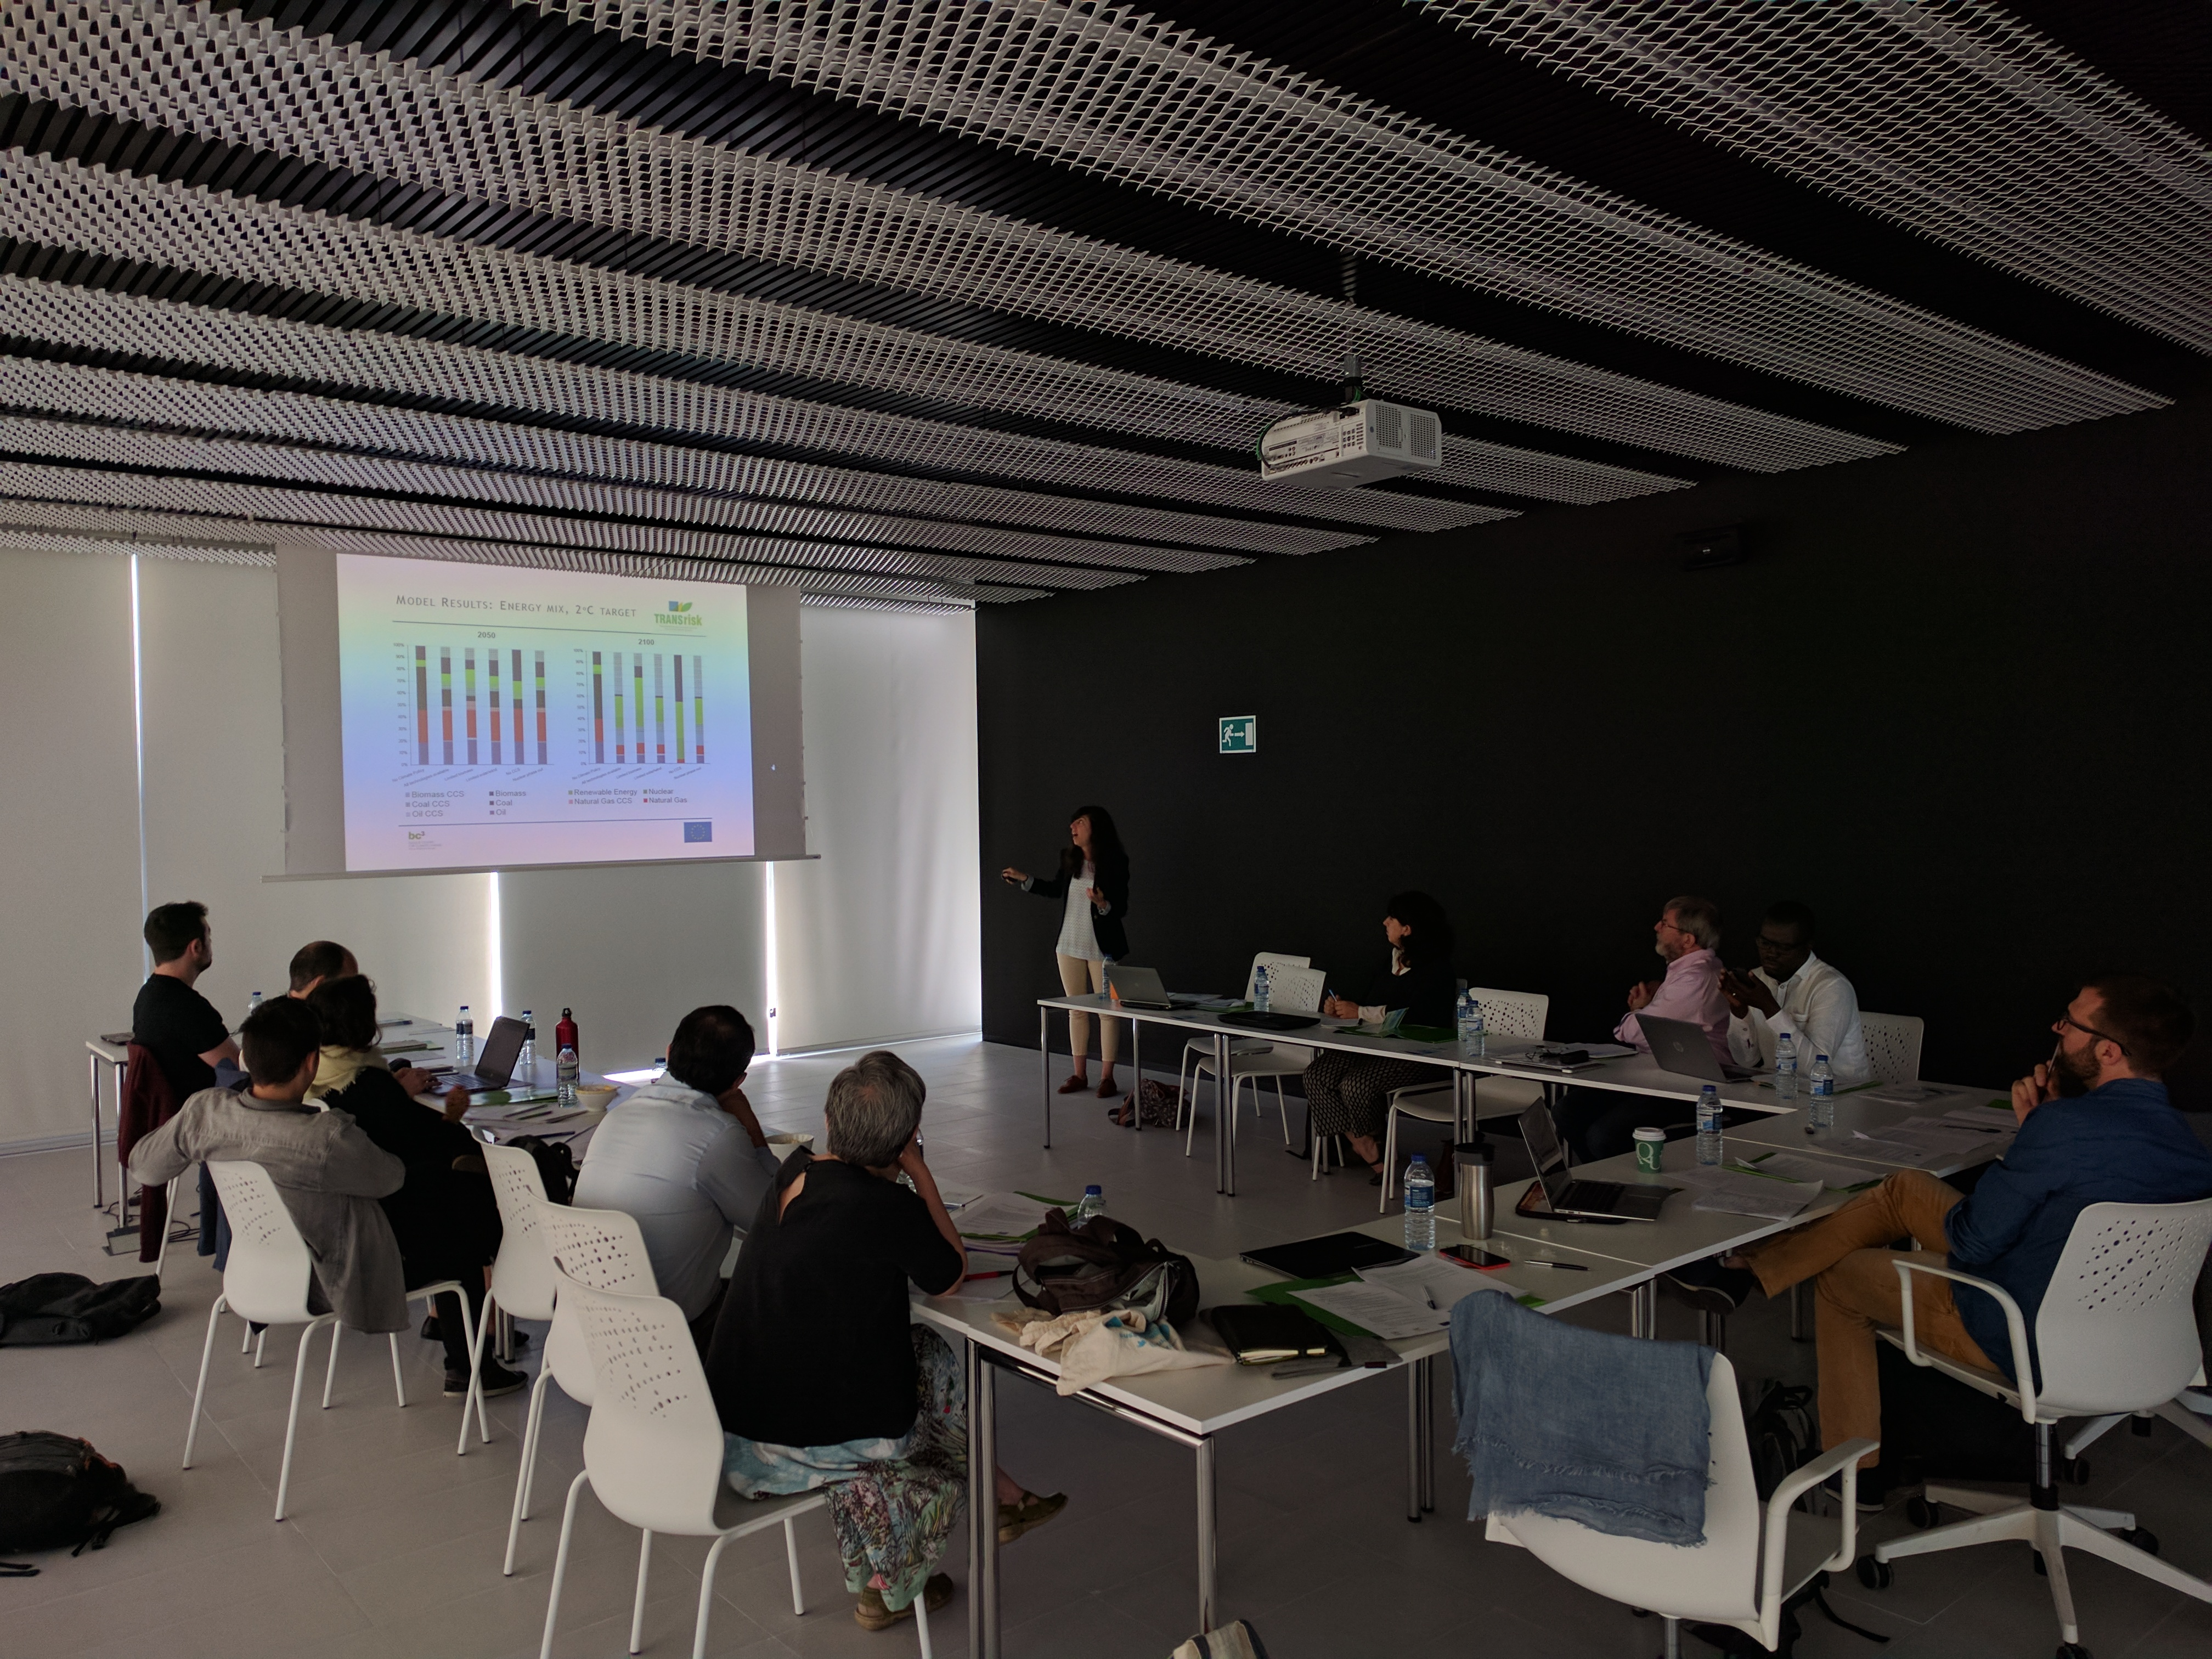 Cristina Pizarro-Irizar (BC3) presenting the required energy mix to achieve the 2 degrees target